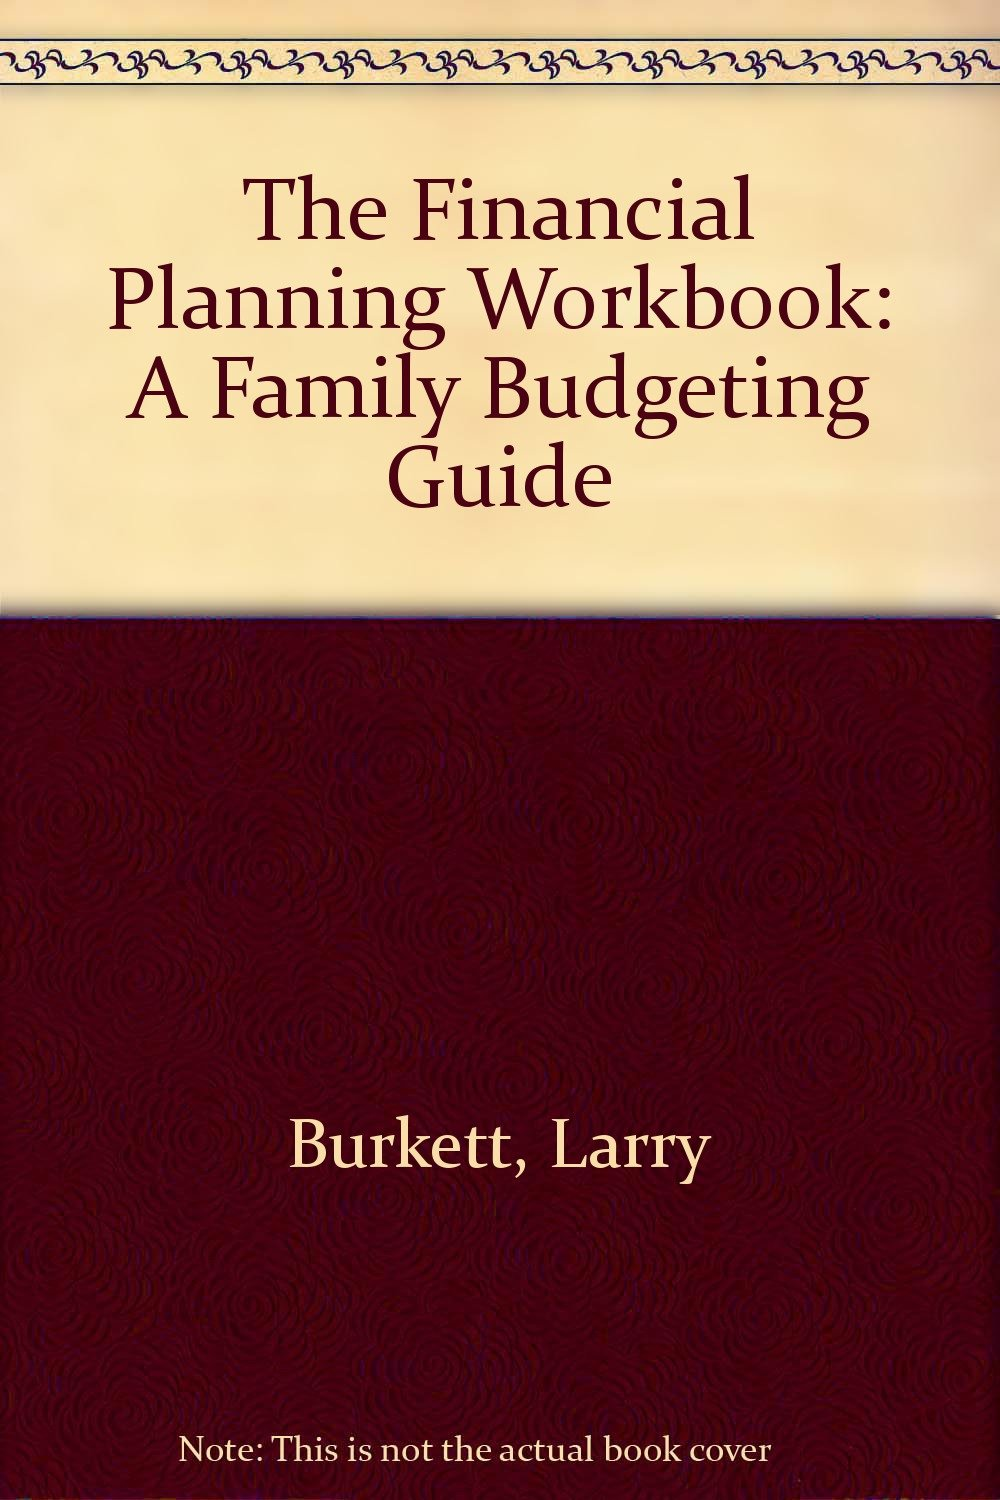 Worksheets Larry Burkett Budget Worksheet the financial planning workbook a family budgeting guide larry burkett 9781881225454 amazon com books